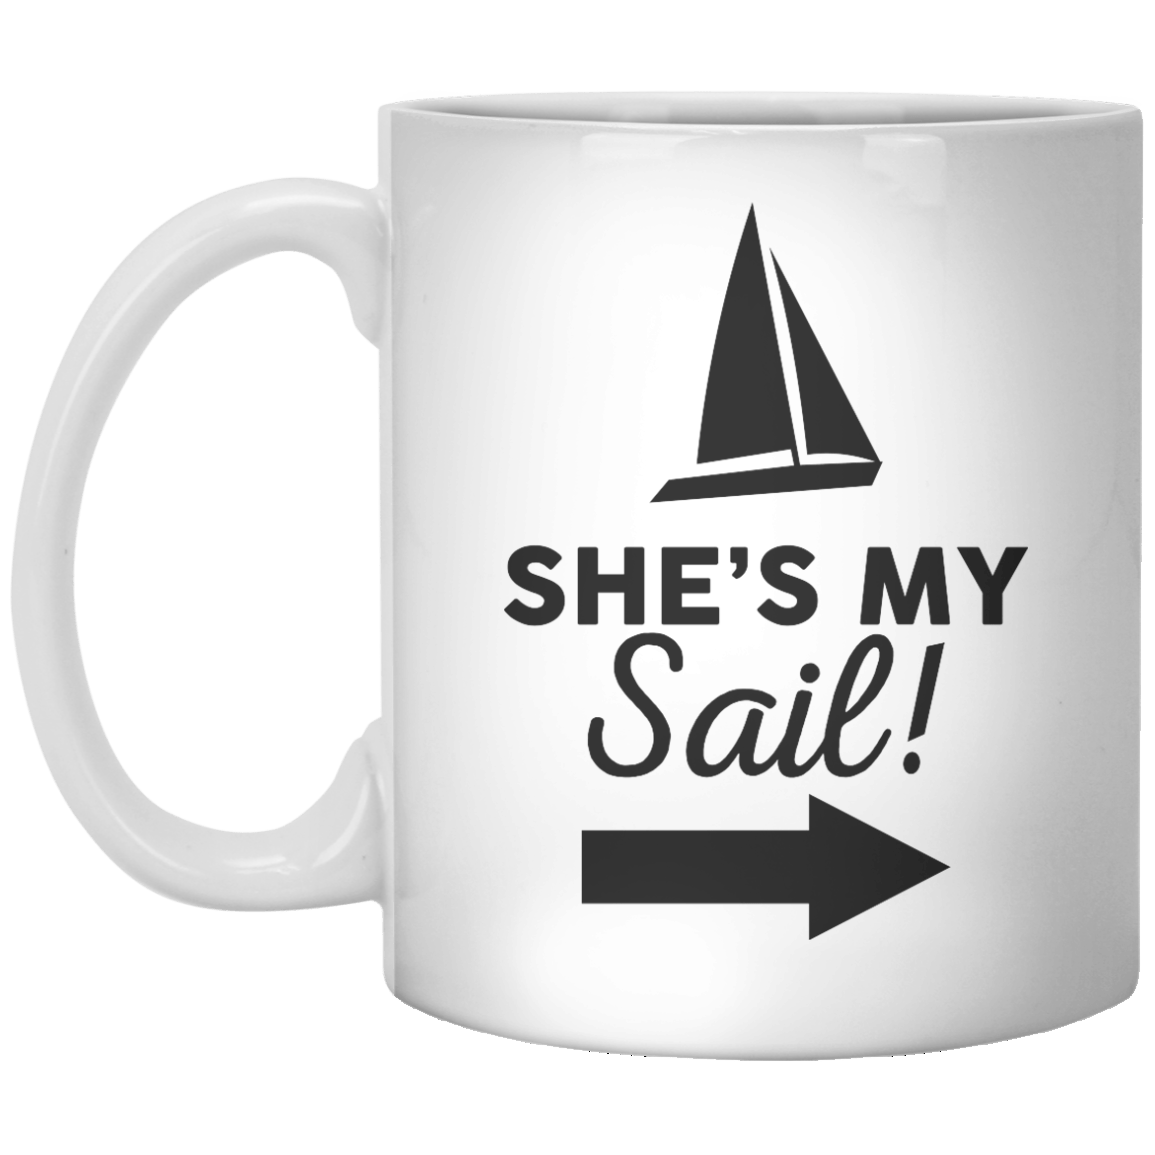 She's My Sail! II T-Shir - Shirtoopia